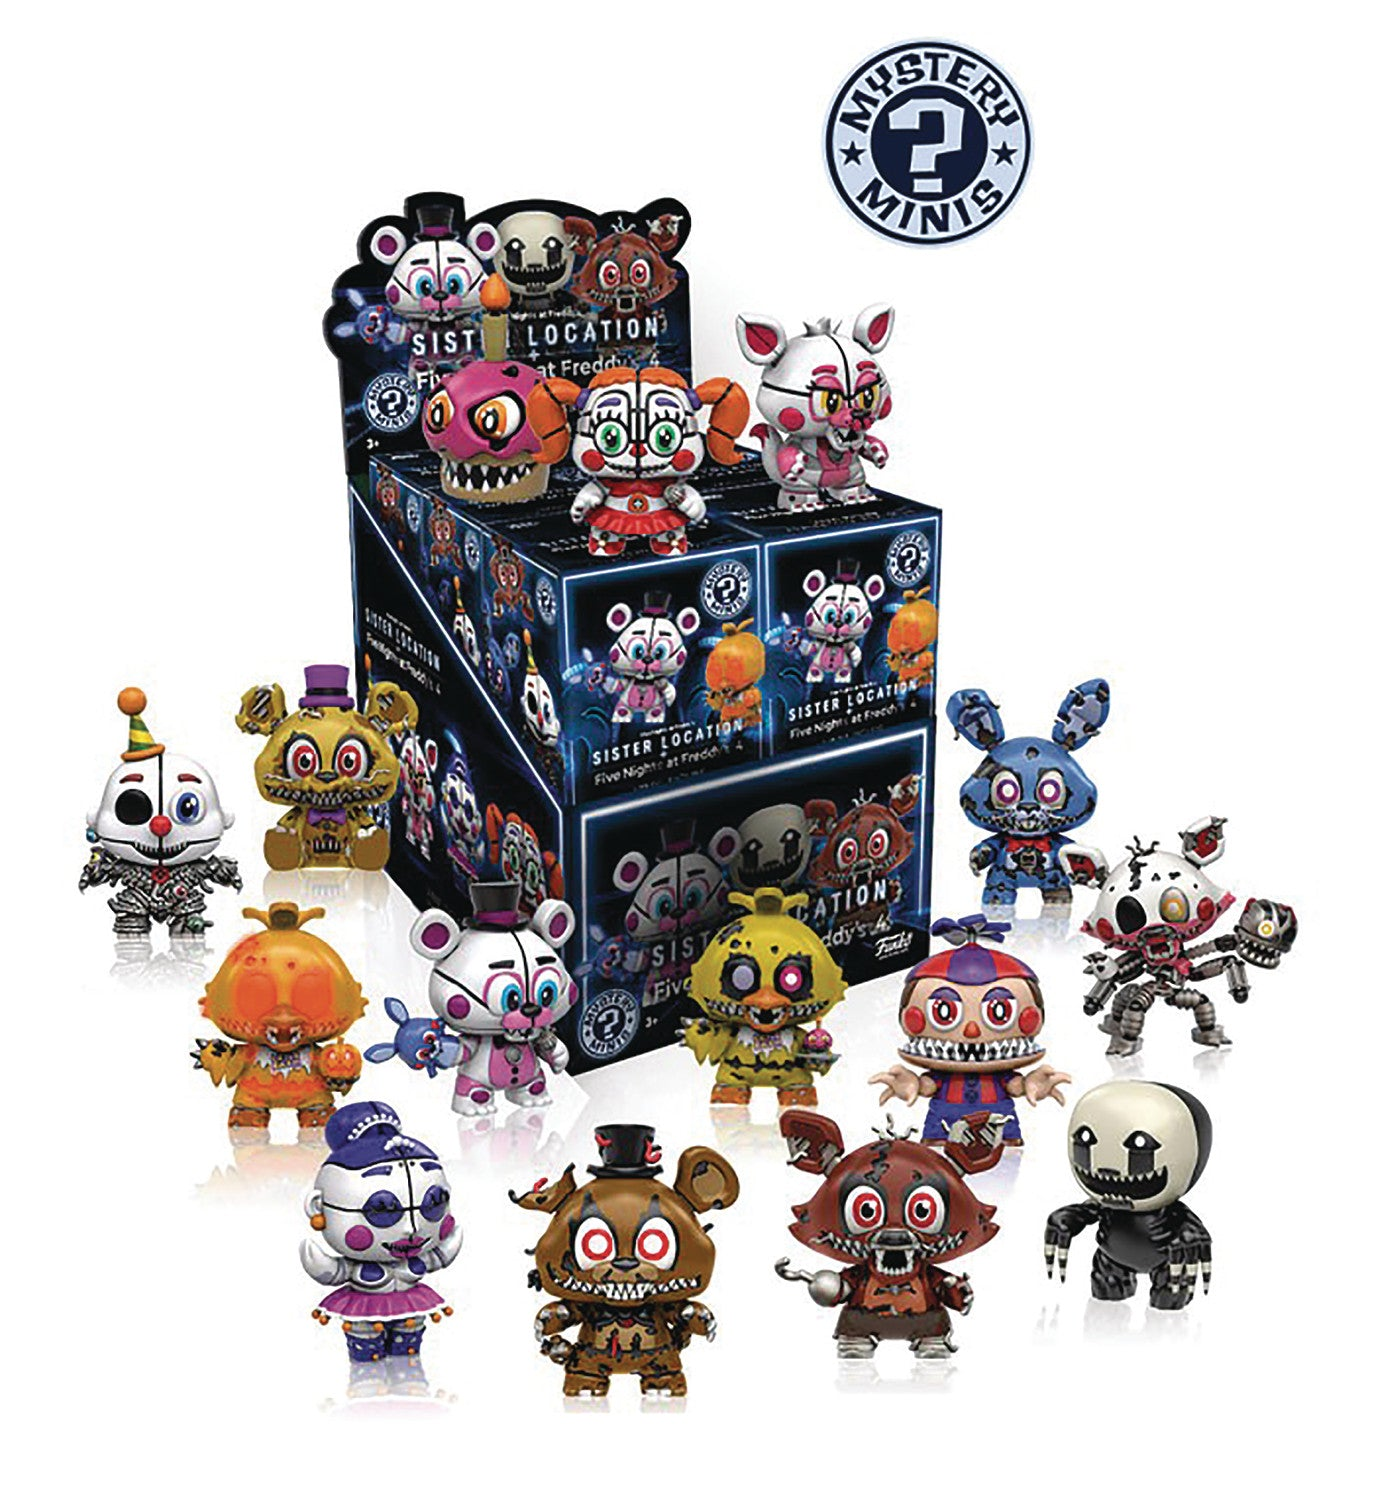 MYSTERY MINIS FIVE NIGHTS AT FREDDYS SER 2 12PC BMB DISP